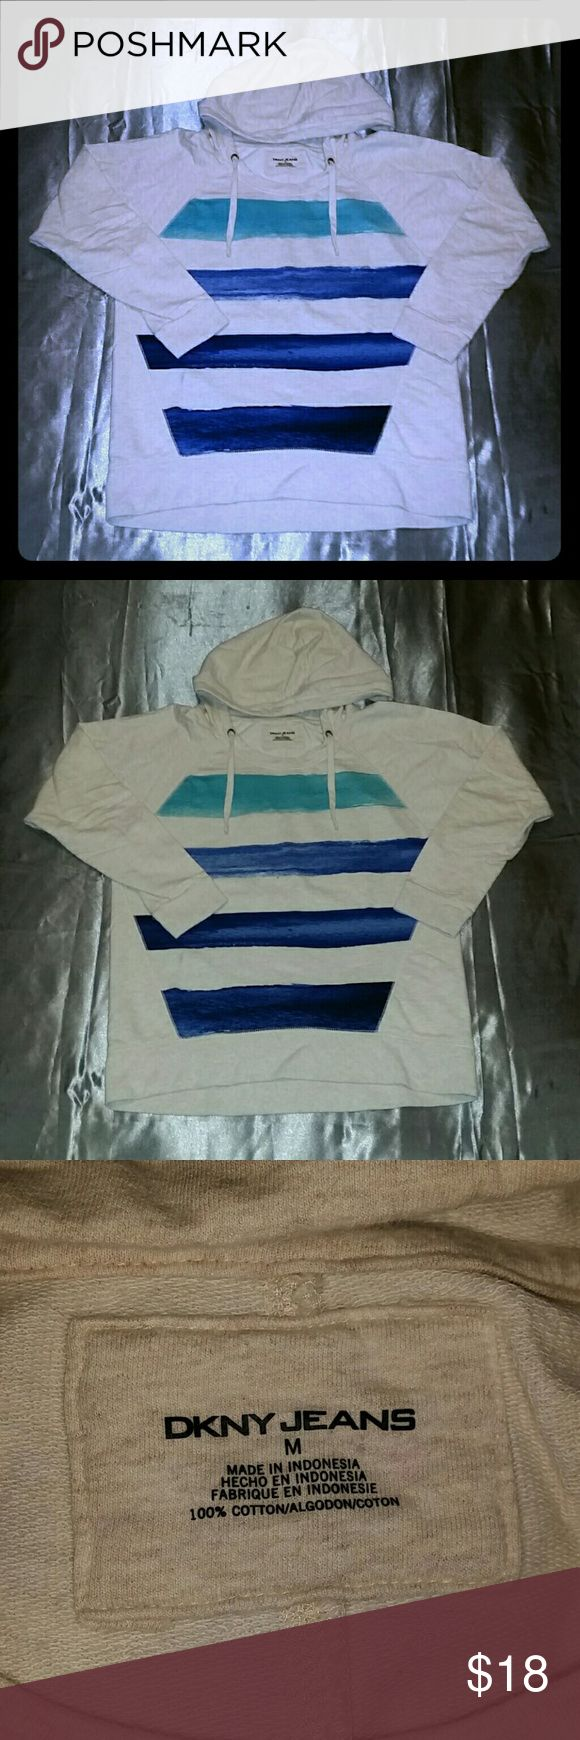 Women's hoodie Light beige 100% cotton pull over hoodie with teal & blue stripes on the front no stains or flaws only worn once DKNY Tops Sweatshirts & Hoodies